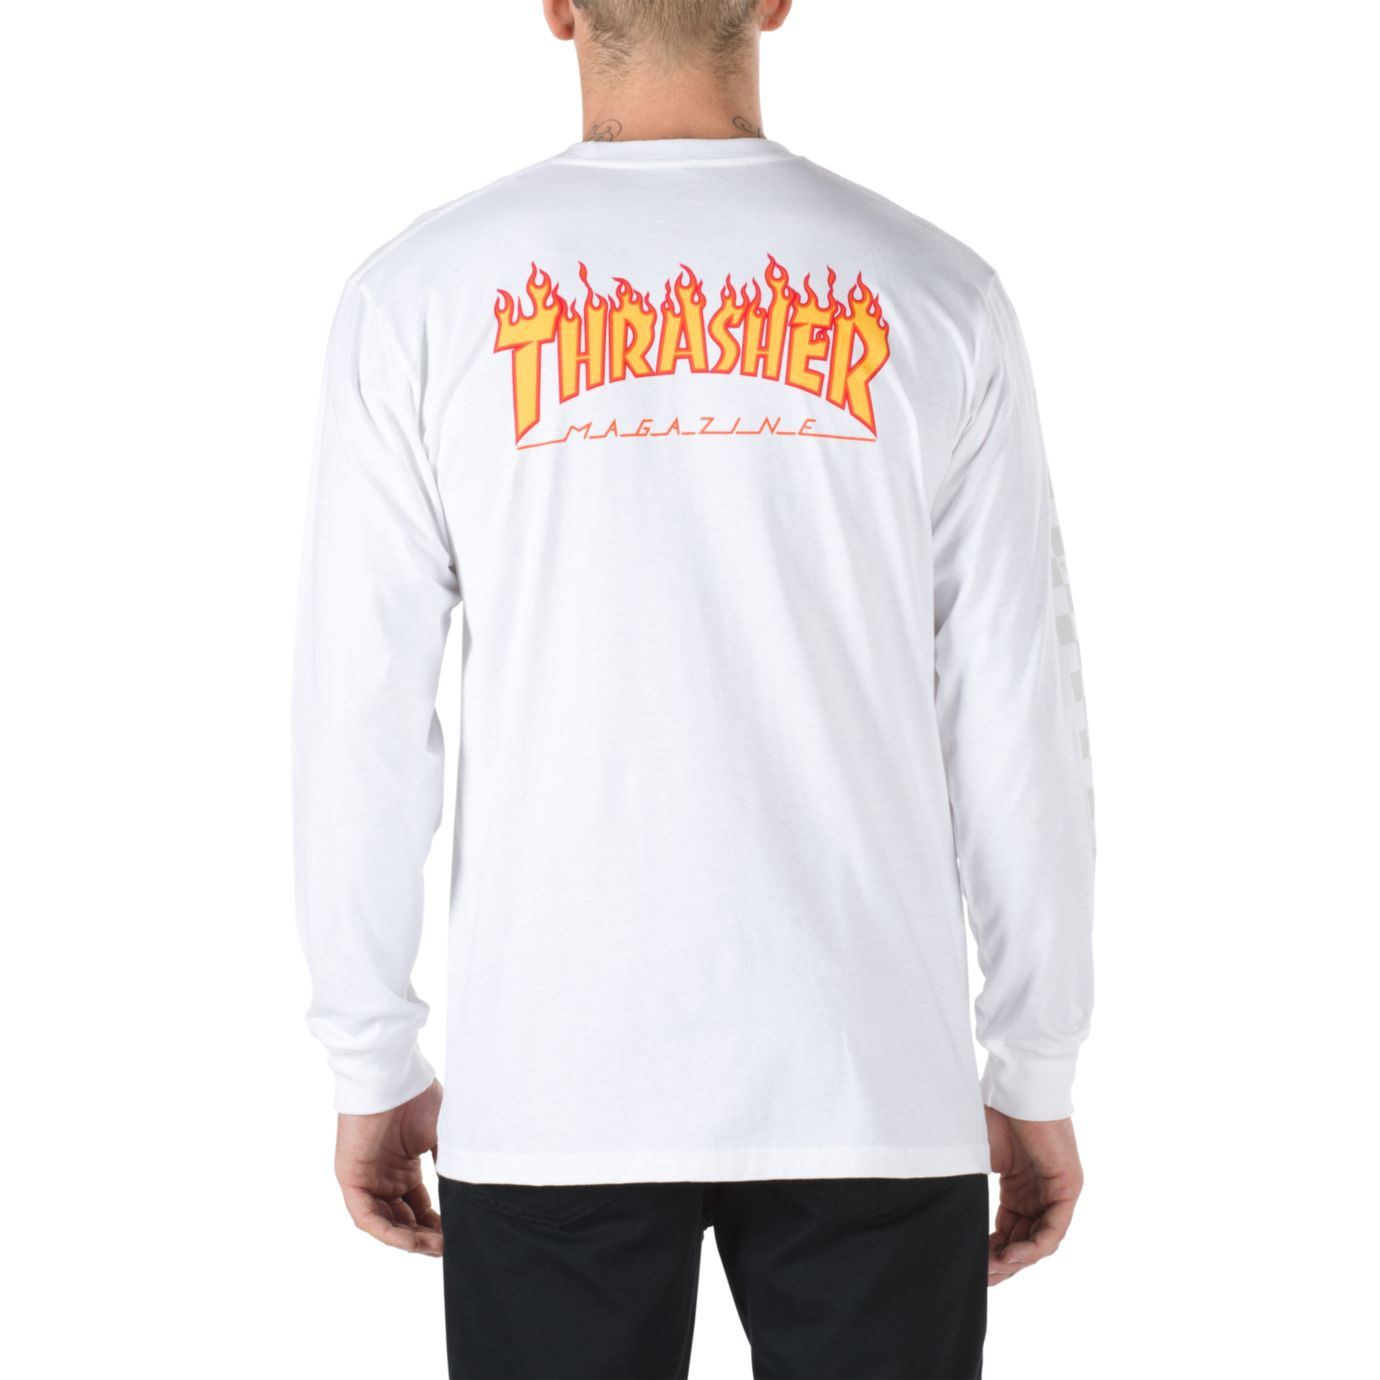 Vans Commemorates Thrasher Magazine s Iconic Flame Motif b2952c9e1